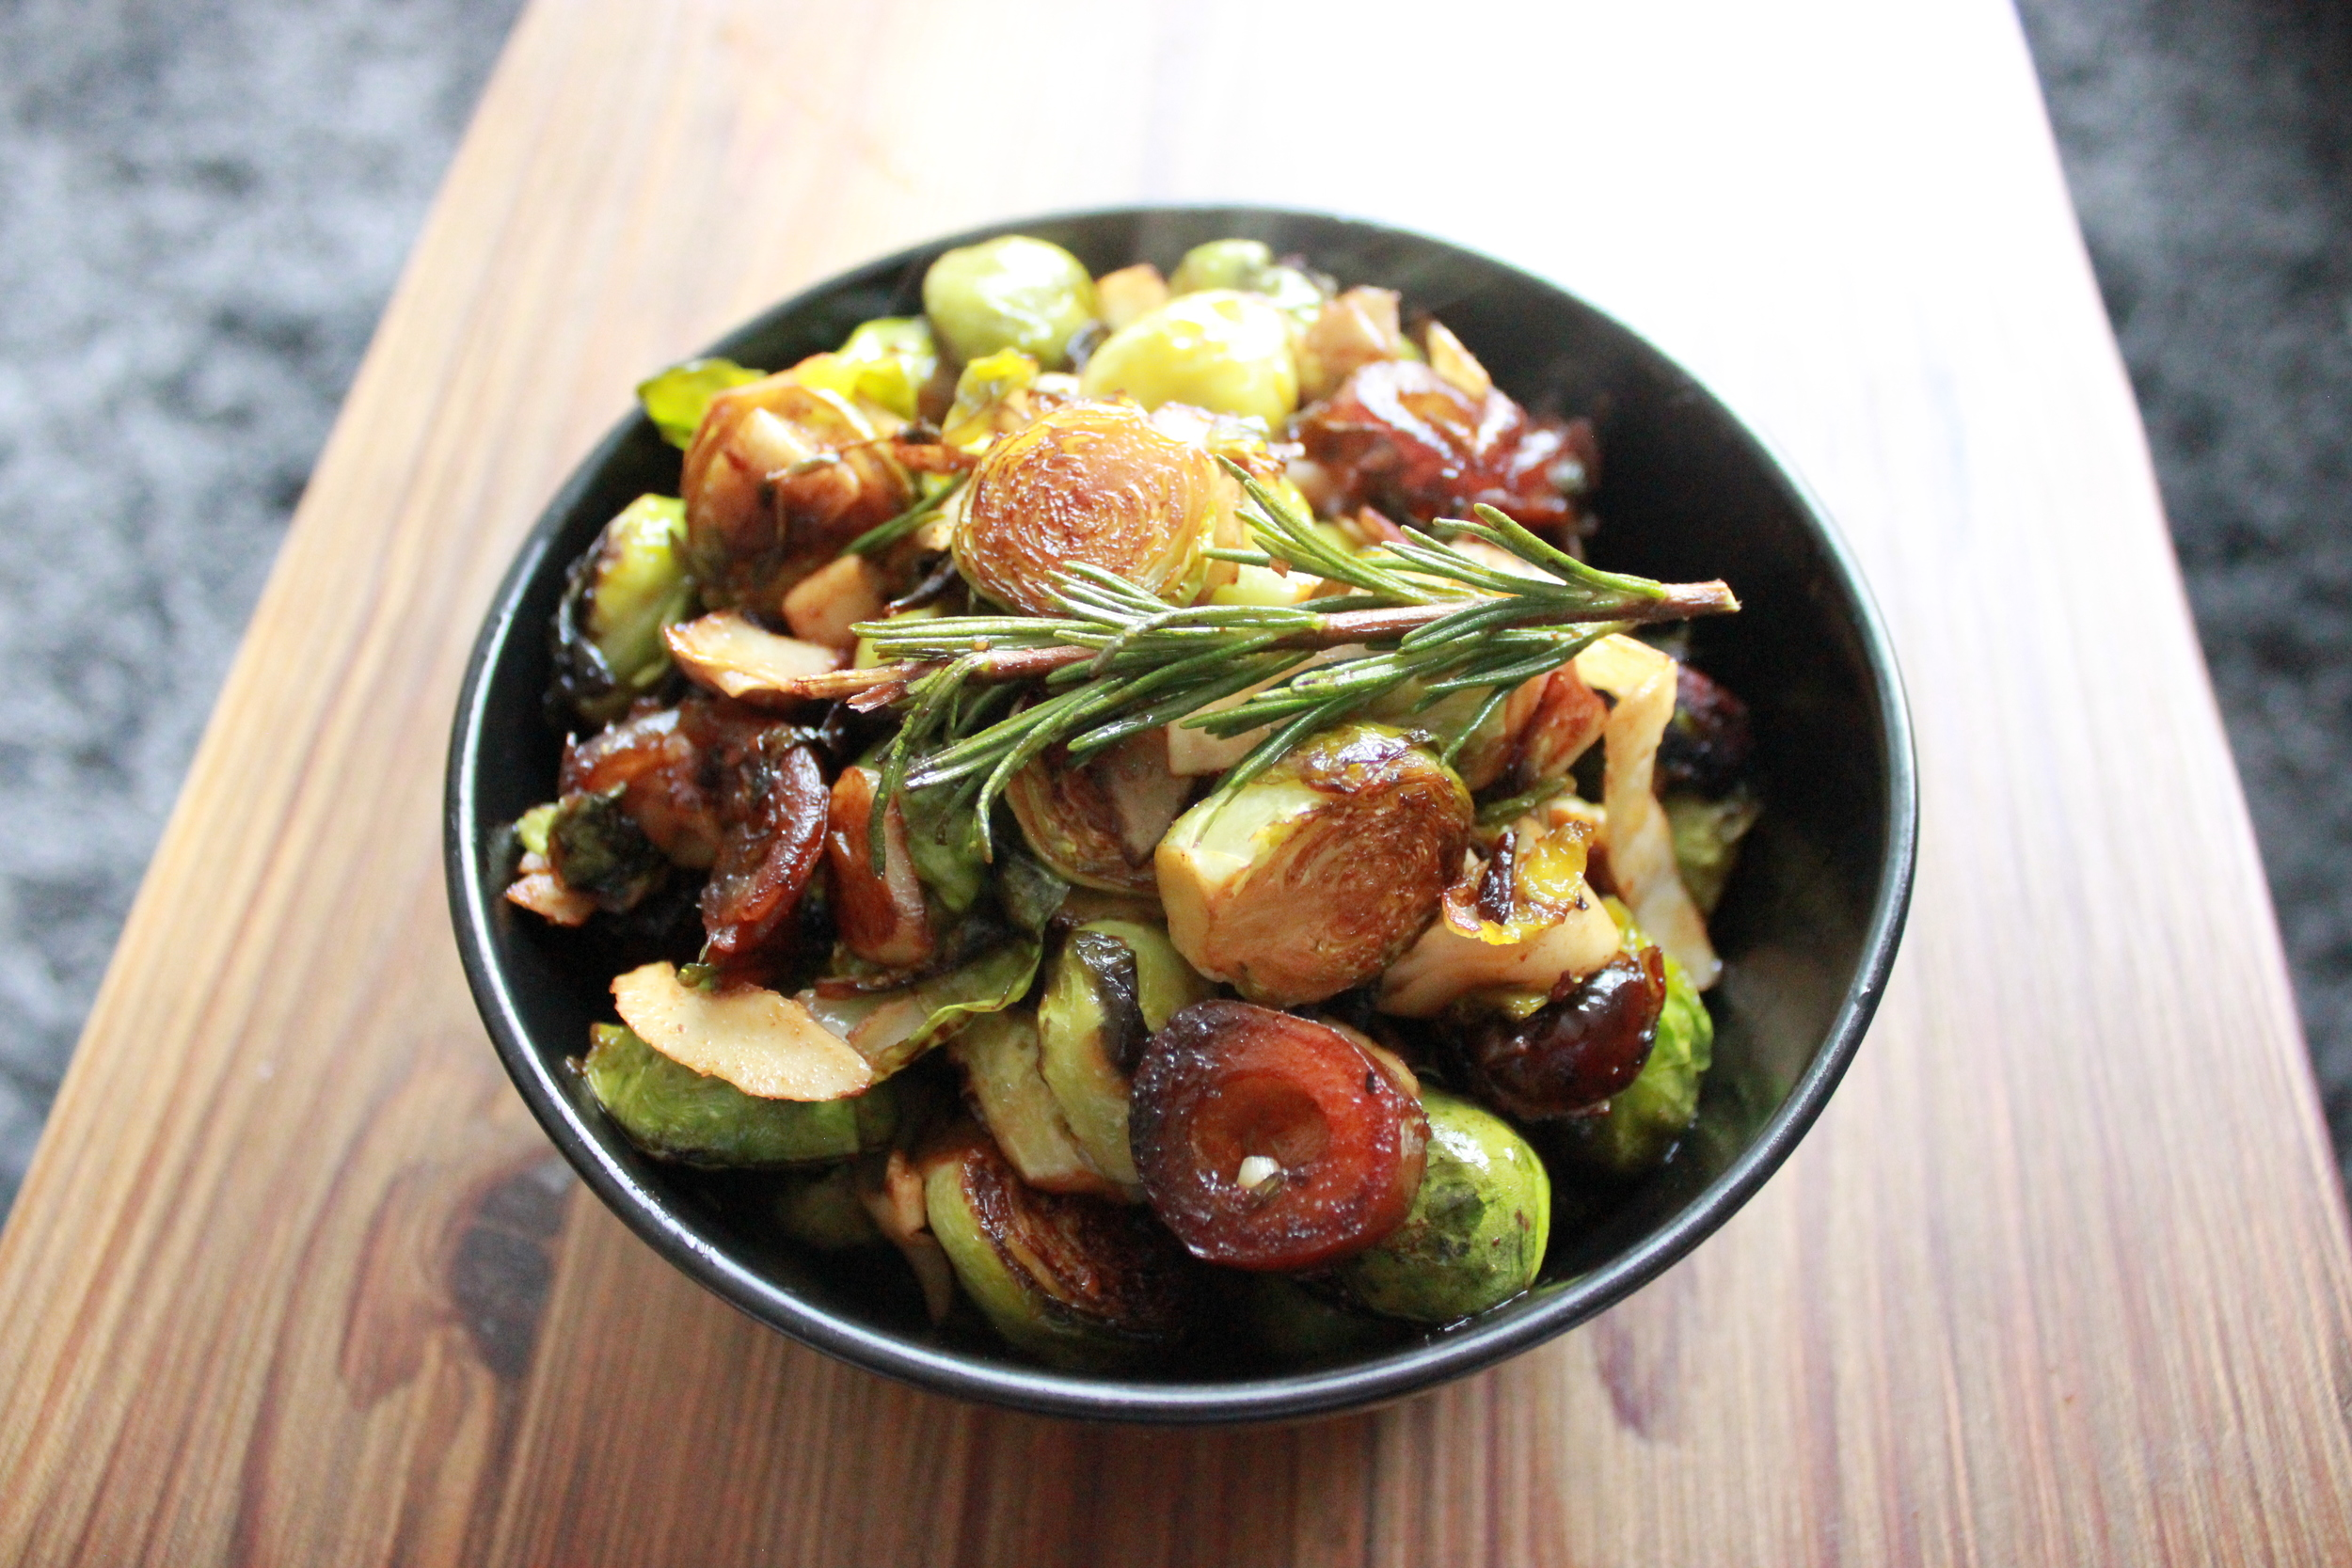 Brussels Sprouts by Charles Chen